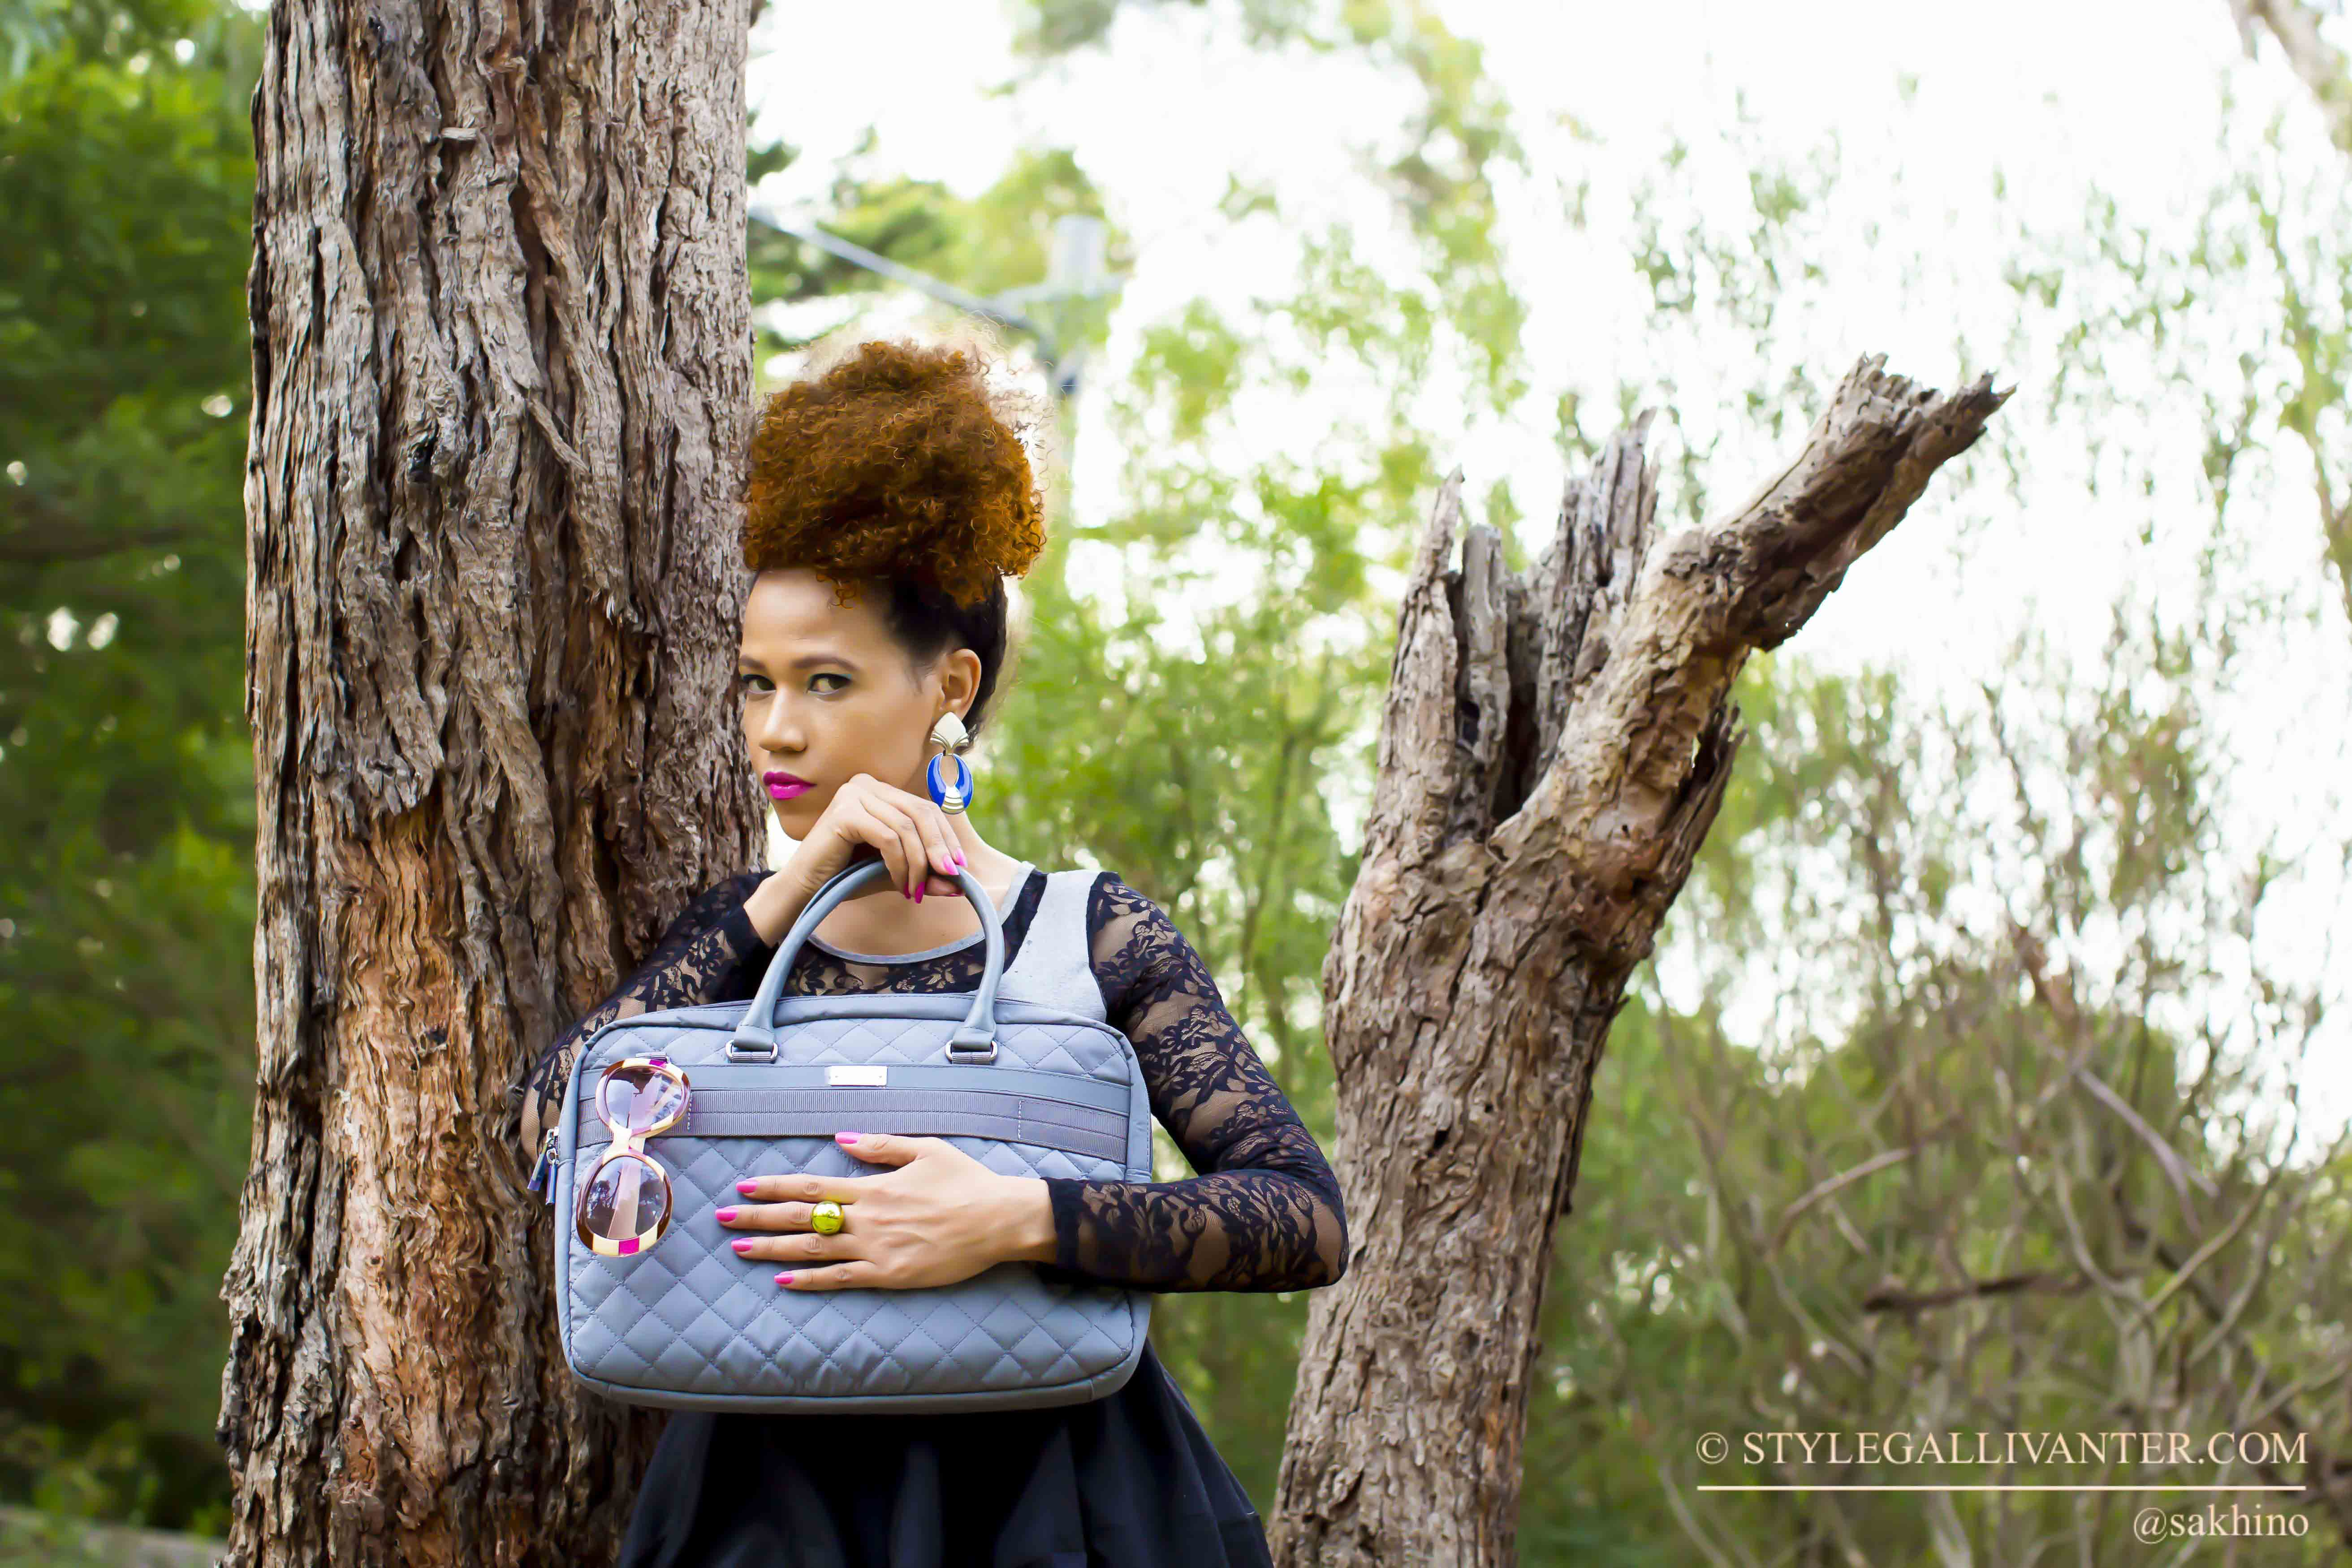 mirandaSAKHINO-copyright-2015_not-to-be-used-without-permission_manolo-blahnik_hedgren-bags-2015_grey-hedgren_top-fashion-blogs-melbourne-2015_blogger-turned-designer-13